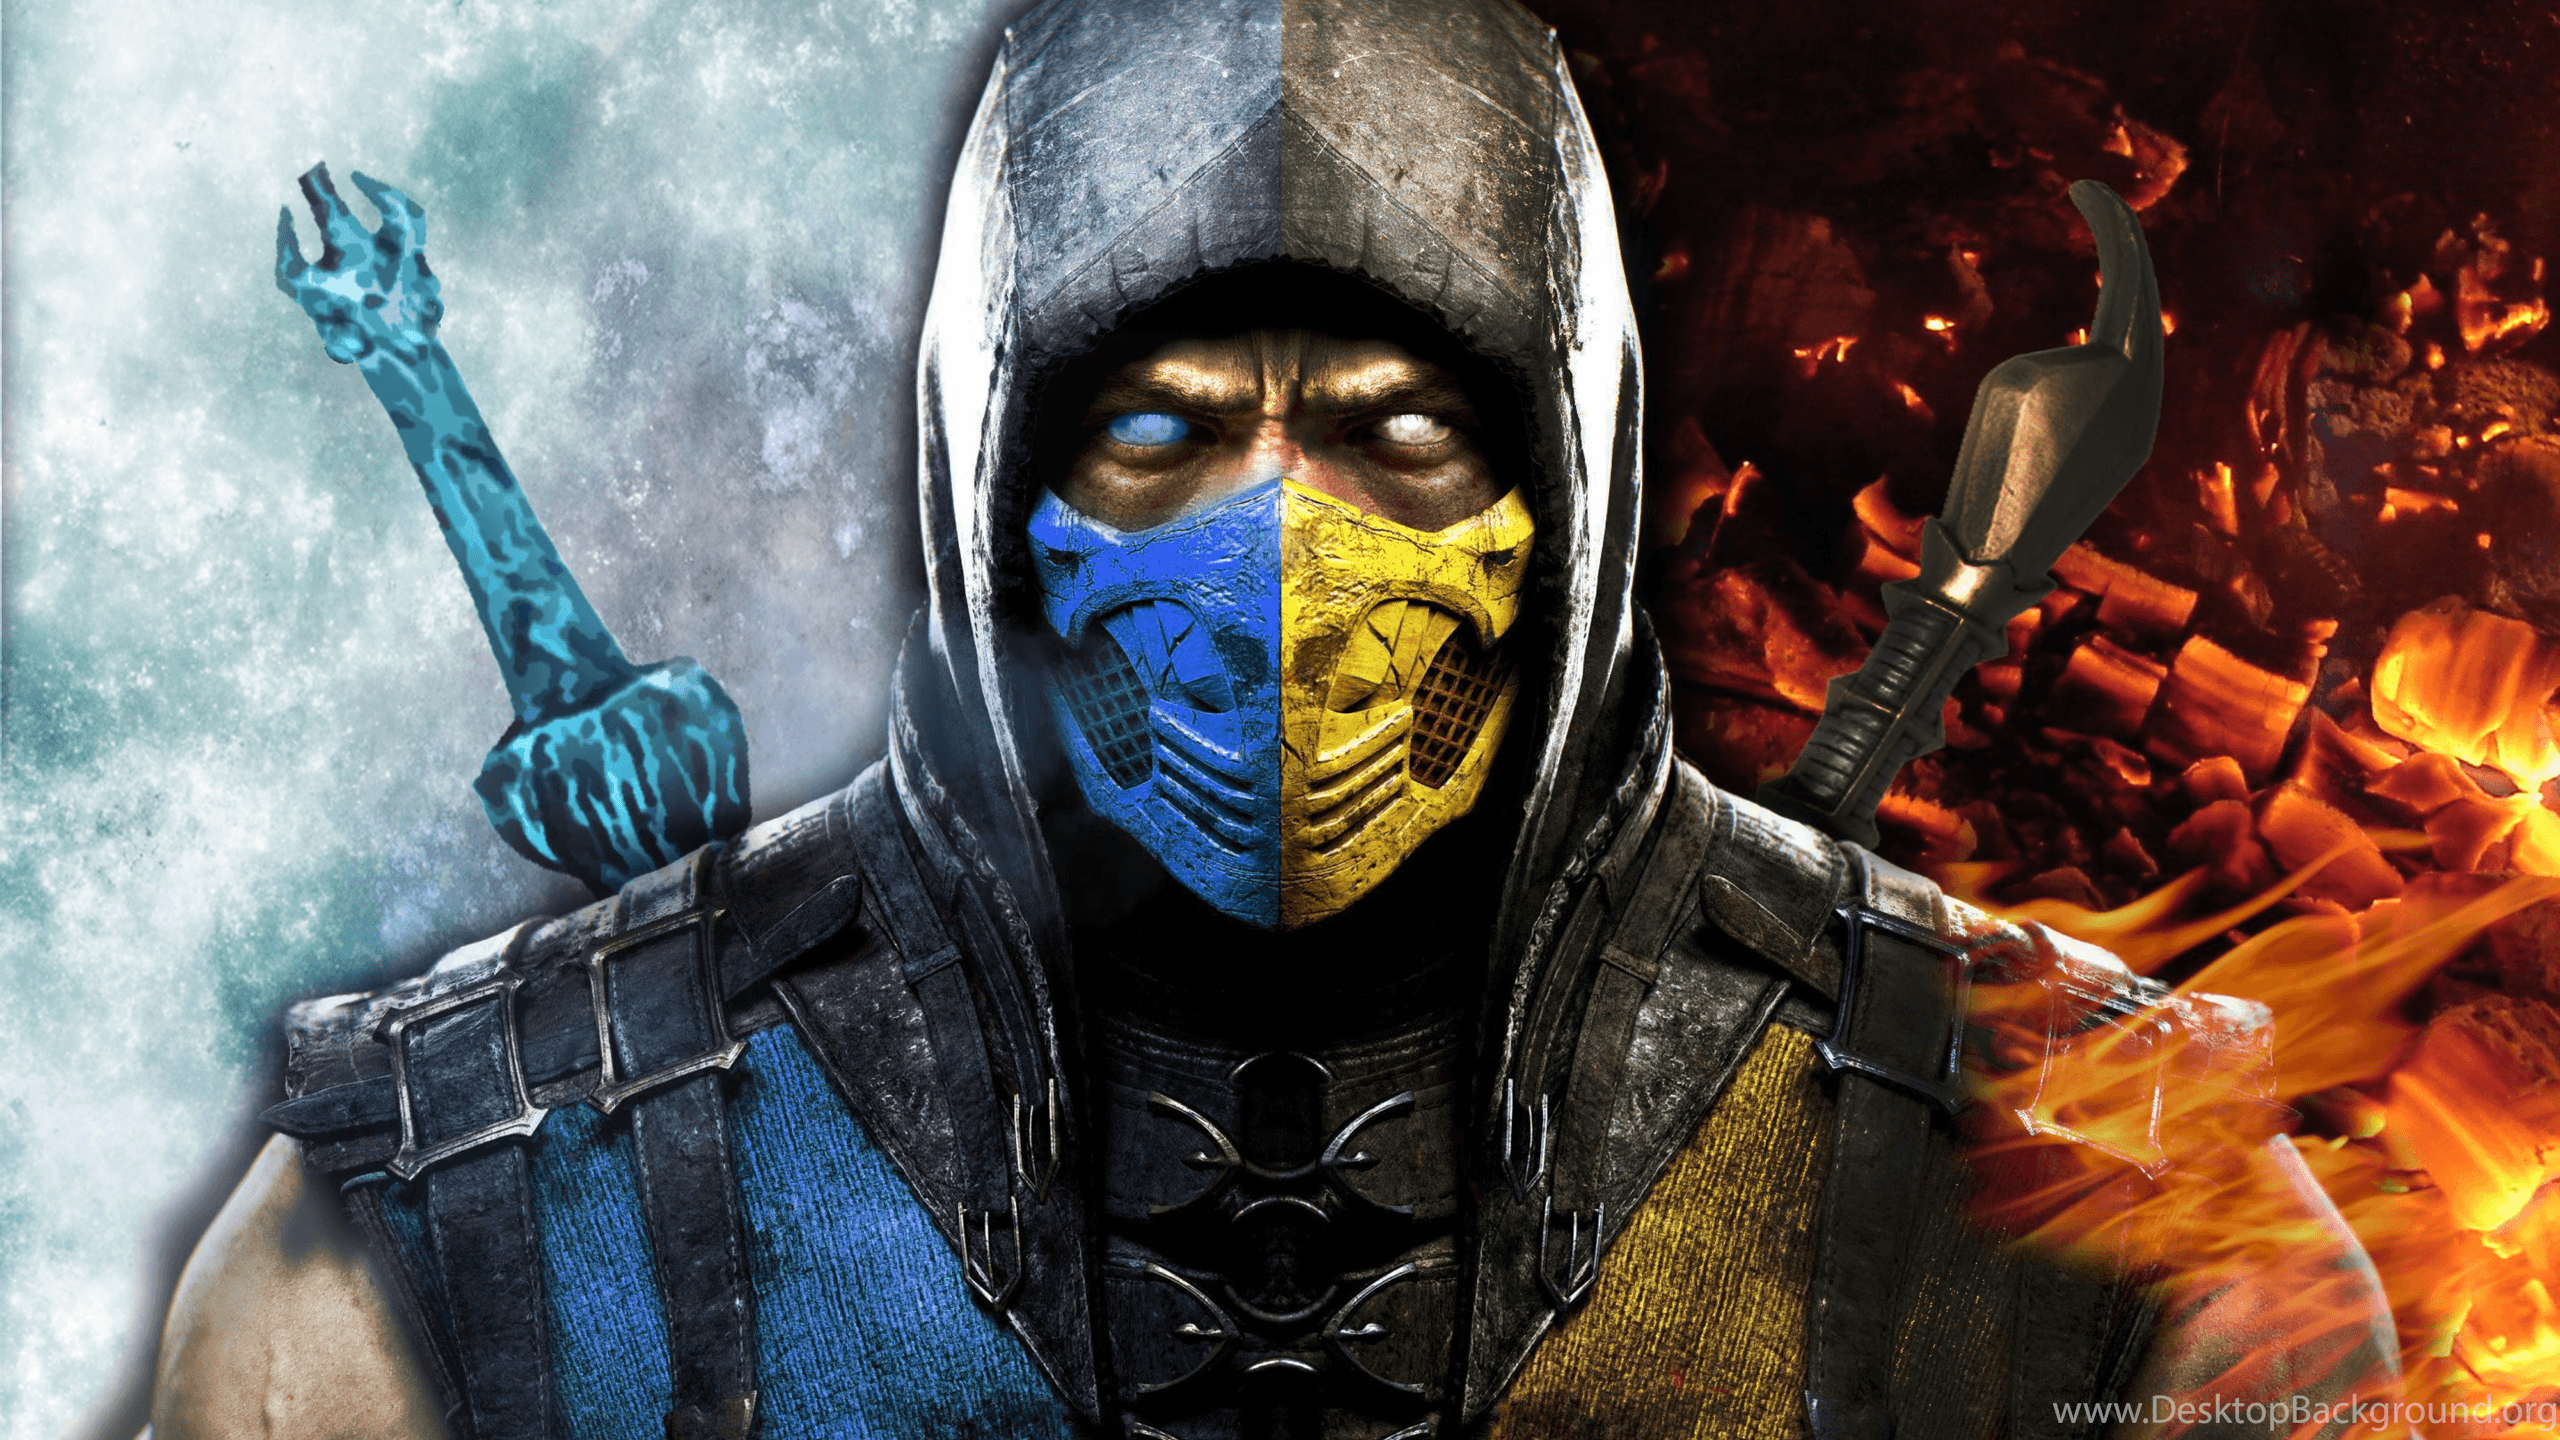 Scorpion Vs Sub Zero Mortal Kombat 9 Wallpapers Mobil